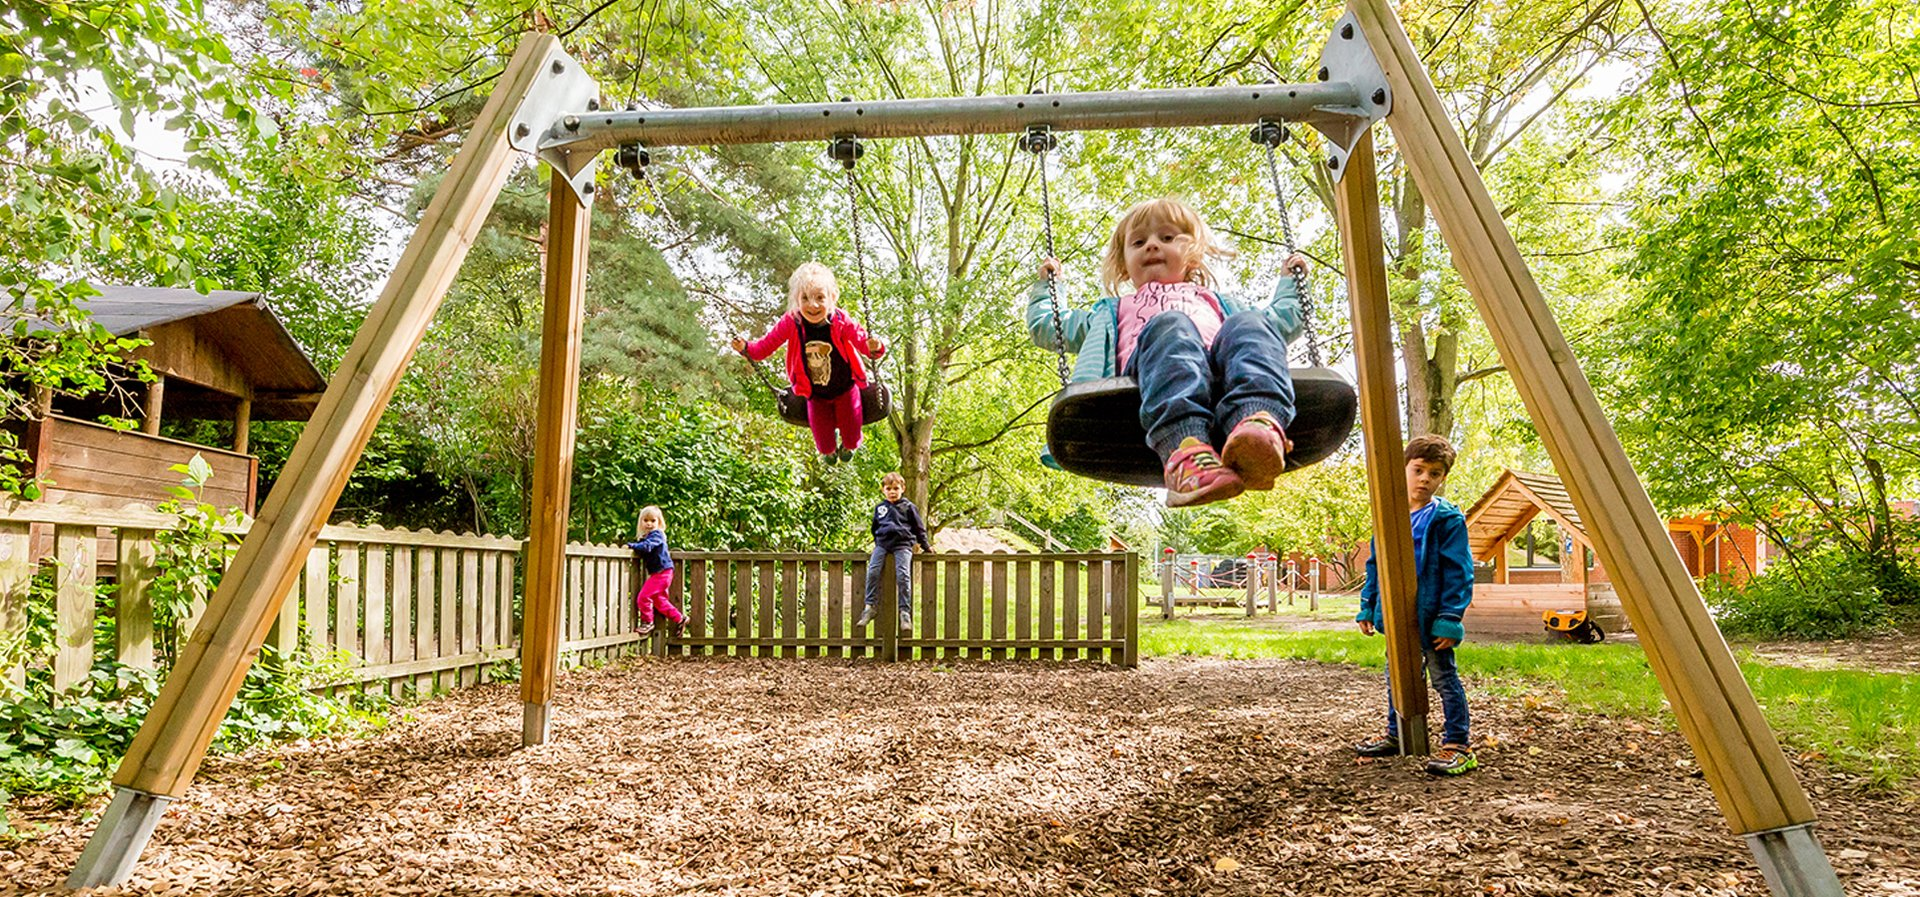 Swings children keep coming back to!